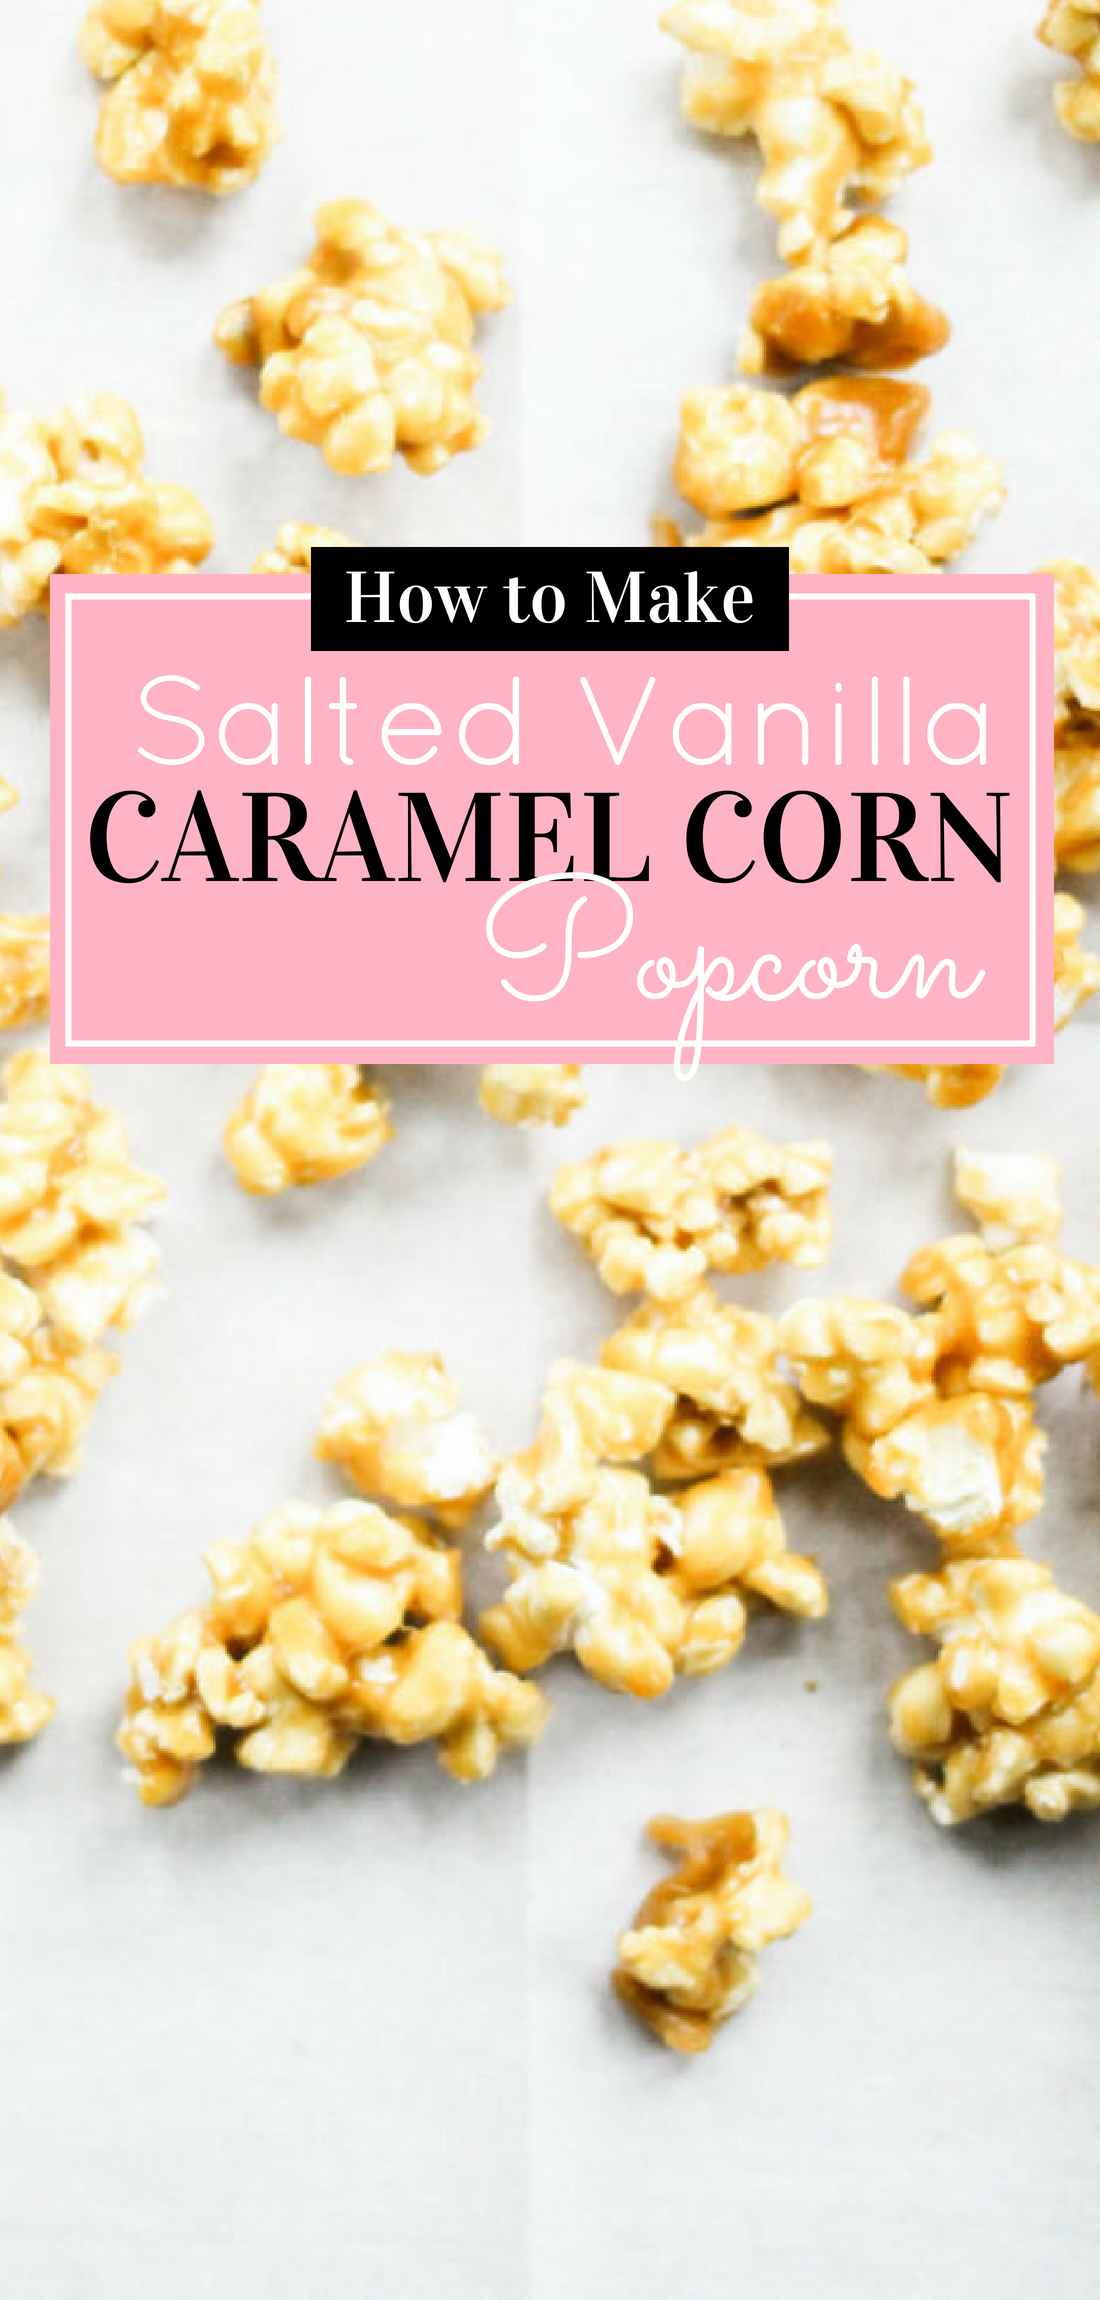 Salted vanilla caramel corn popcorn - an upgrade on the classic - is buttery and sweet and utterly snackable. This incredible caramel corn is perfect for your next party or any excuse for a sweet treat, really. The recipe is also super simple; no candy thermometer needed. #caramelcorn #saltedcaramelcorn Click through for the recipe. | glitterinc.com | @glitterinc